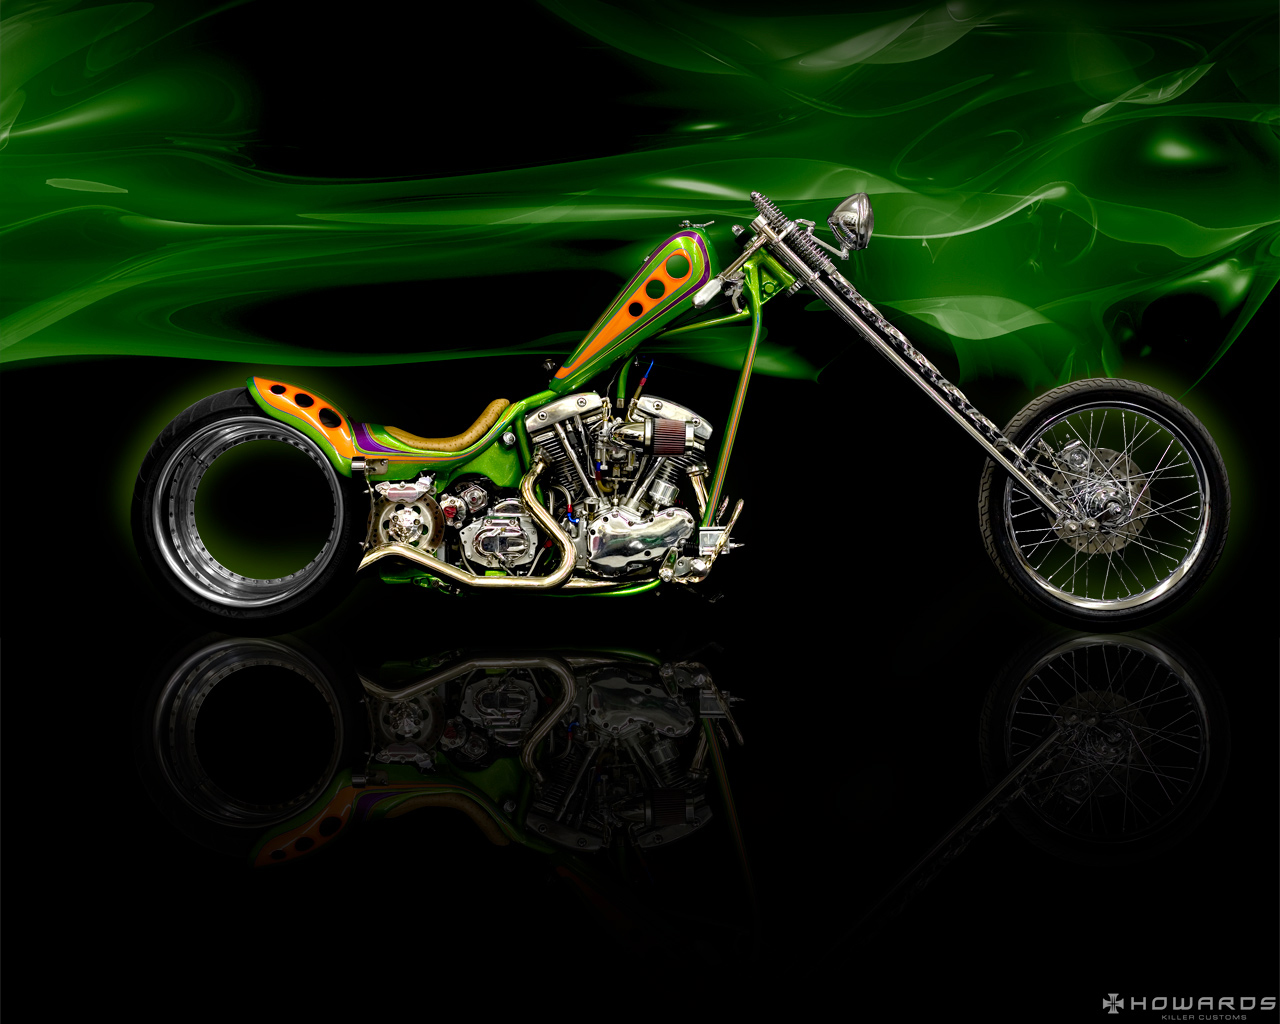 Harley Davidson Chopper Exclusive HD Wallpapers 1920 1280x1024